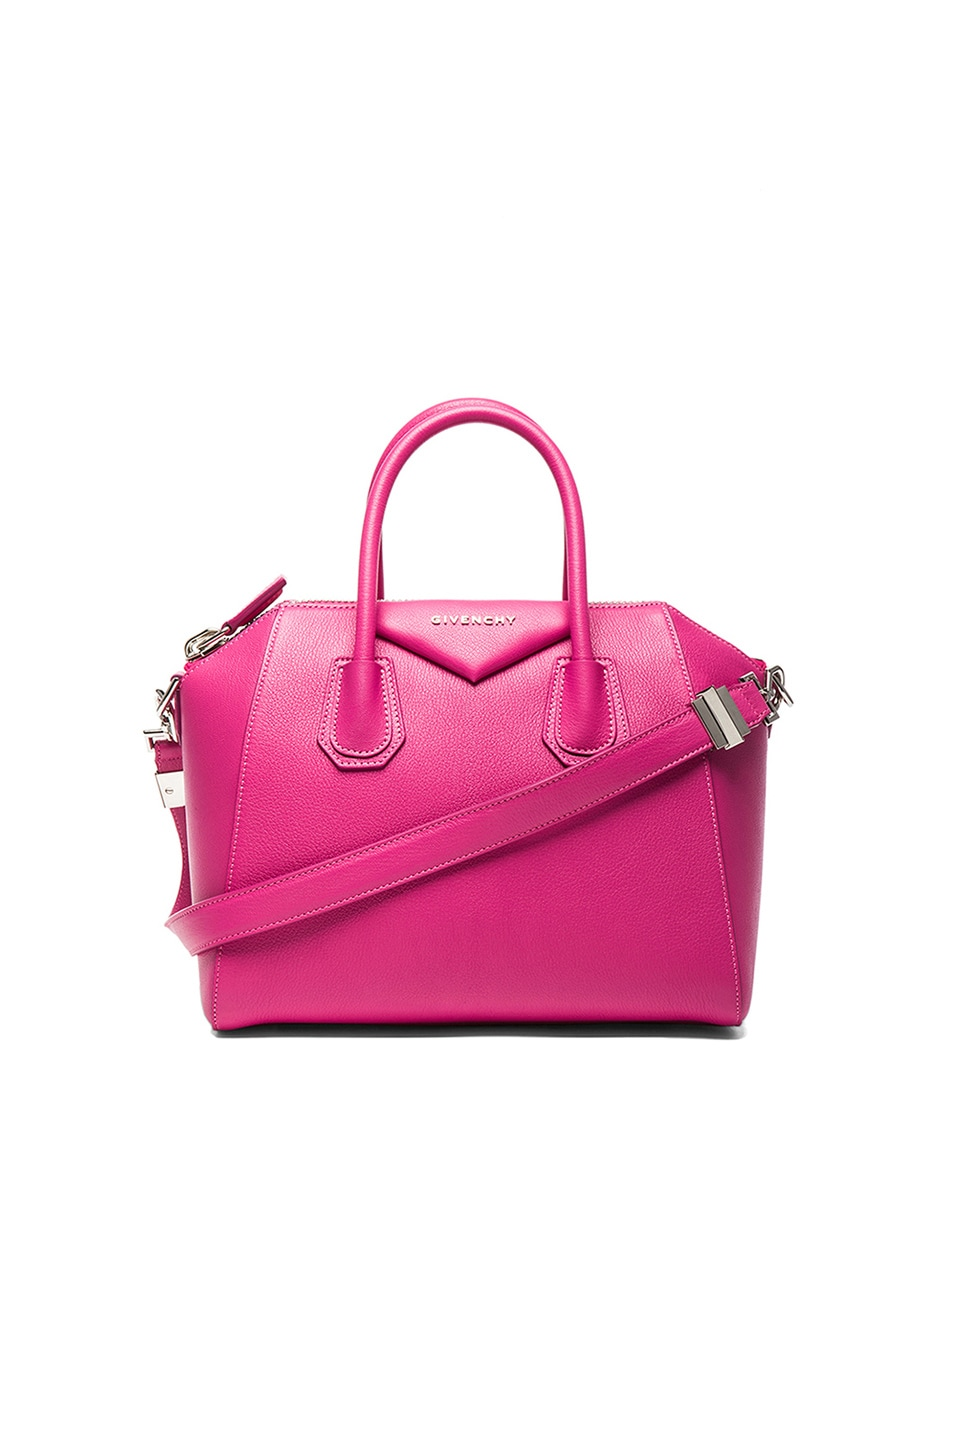 Image 1 of GIVENCHY Small Antigona in Fuchsia